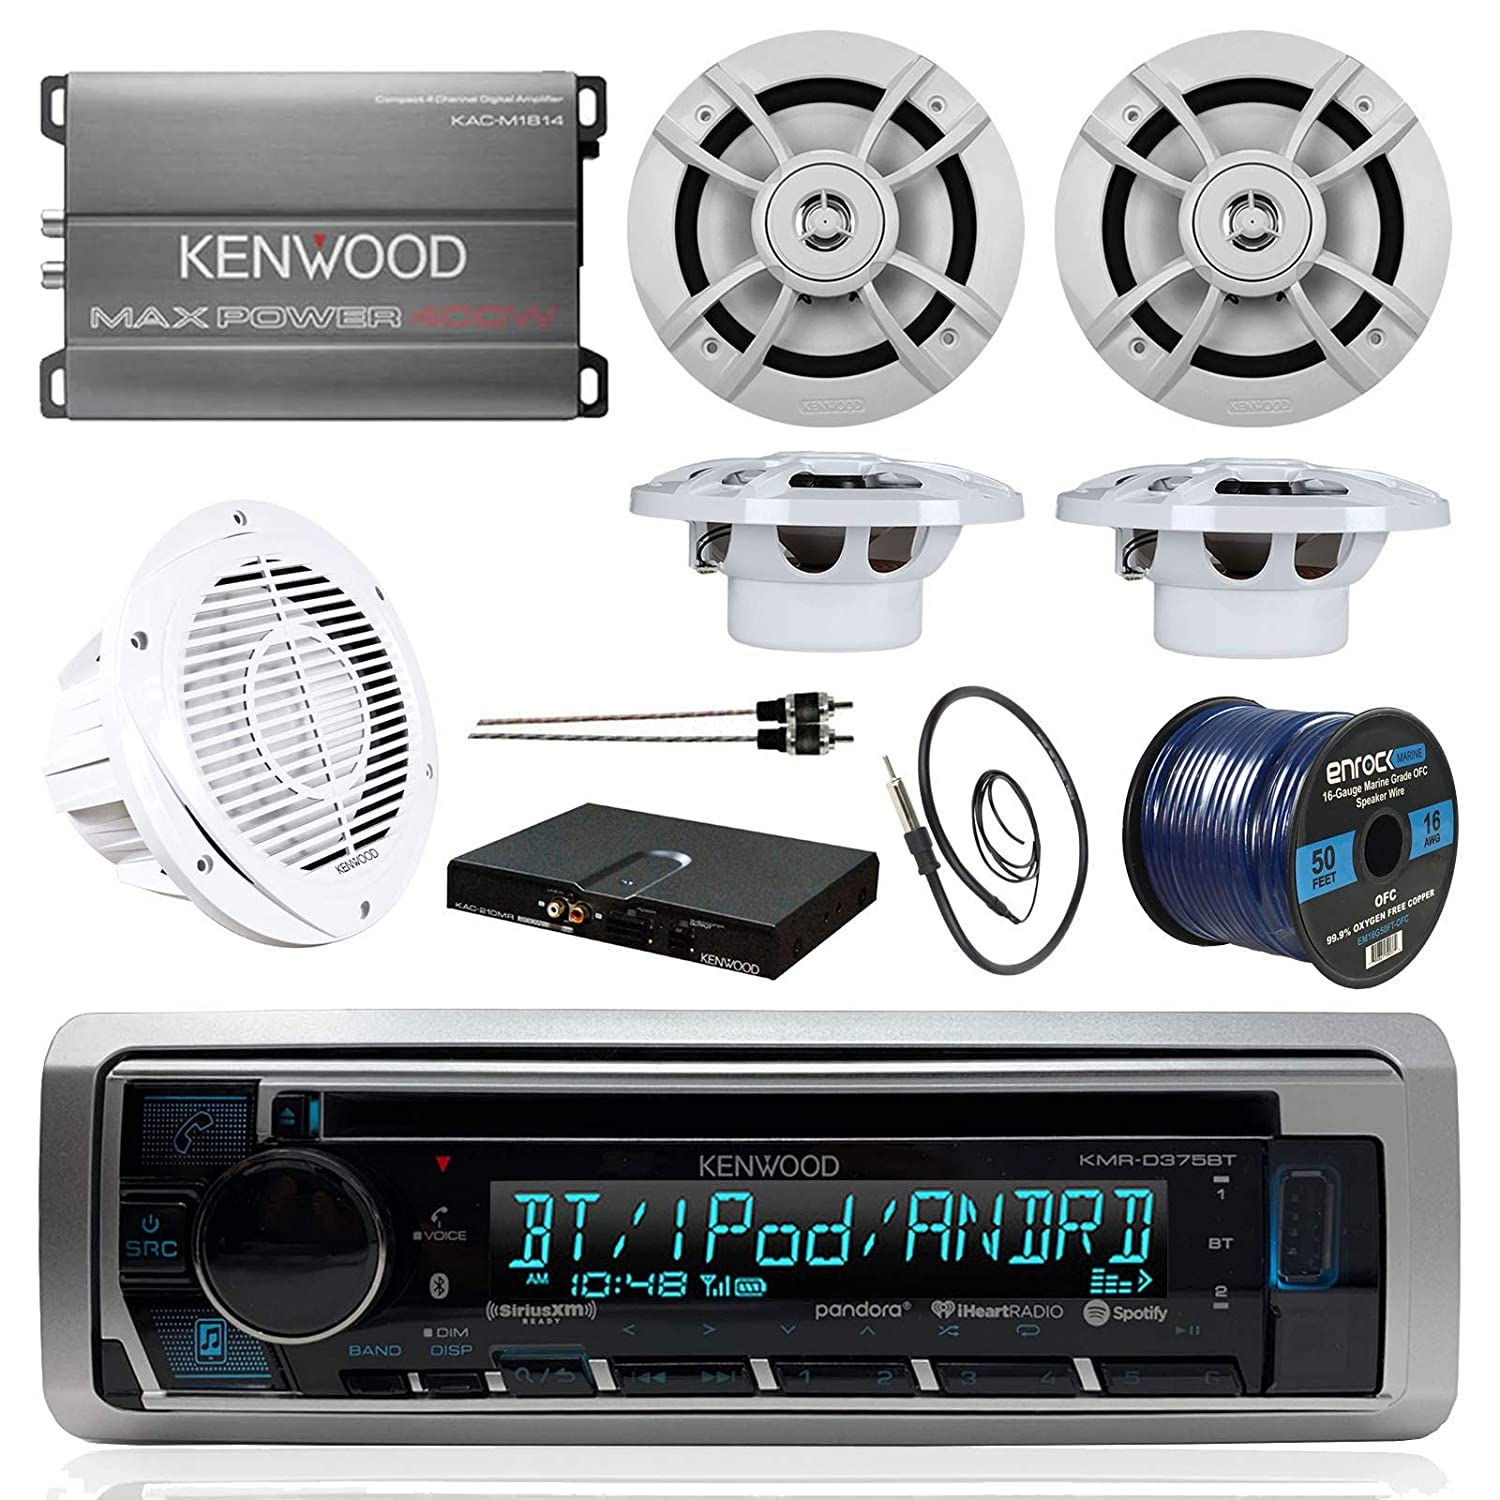 amazon com boat sound system package kenwood marine bluetooth car stereo wiring diagram boat sound system package kenwood marine bluetooth receiver kenwood compact 4 ch amp, 4 6 5 inch marine speakers kenwood 10\